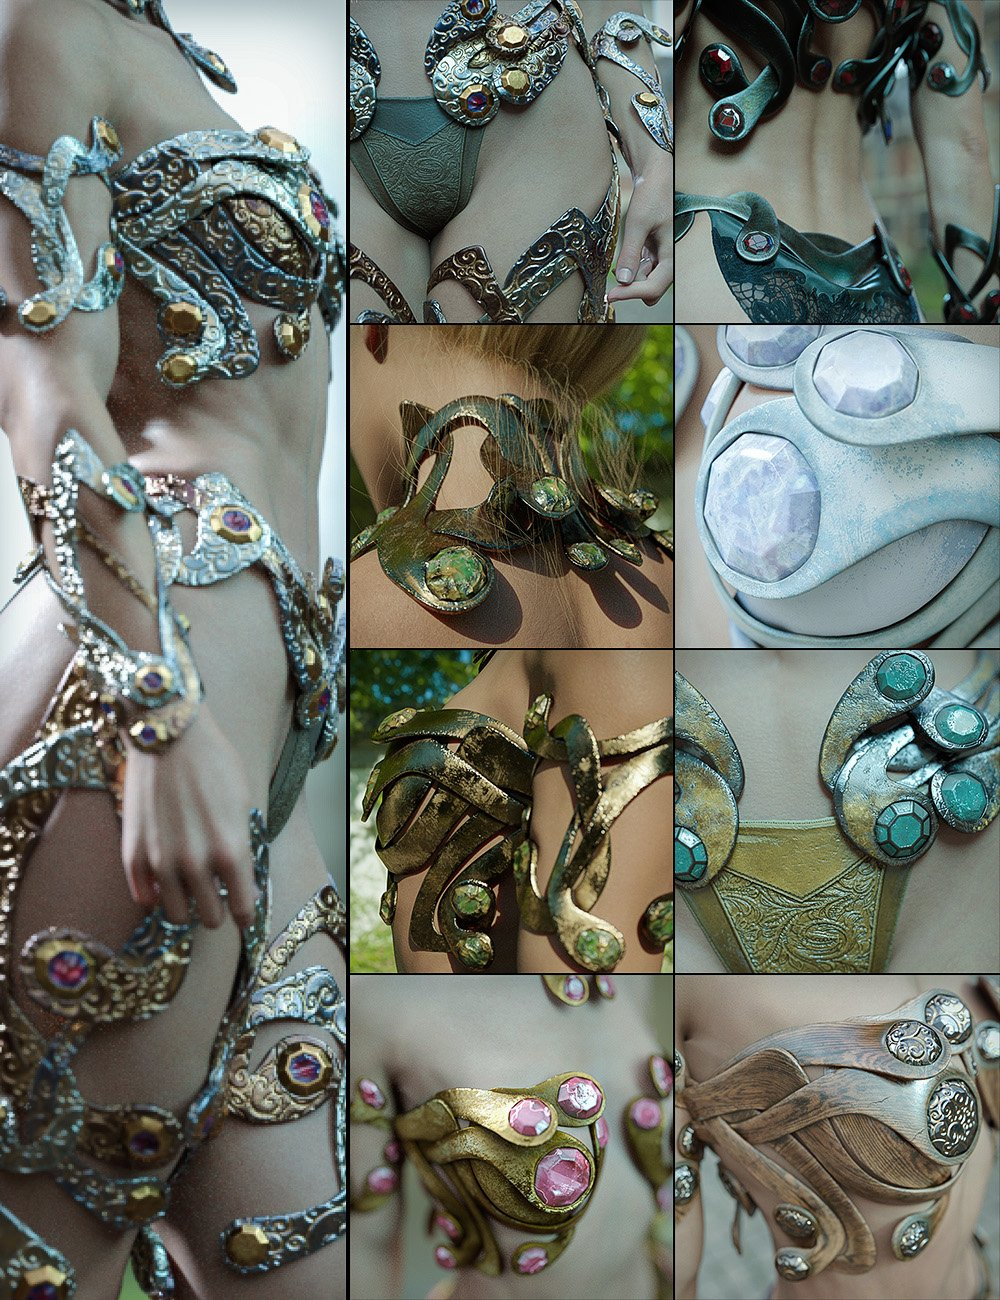 Styles Vol. 1 for Enchanting Ornaments by: Aeon Soul, 3D Models by Daz 3D